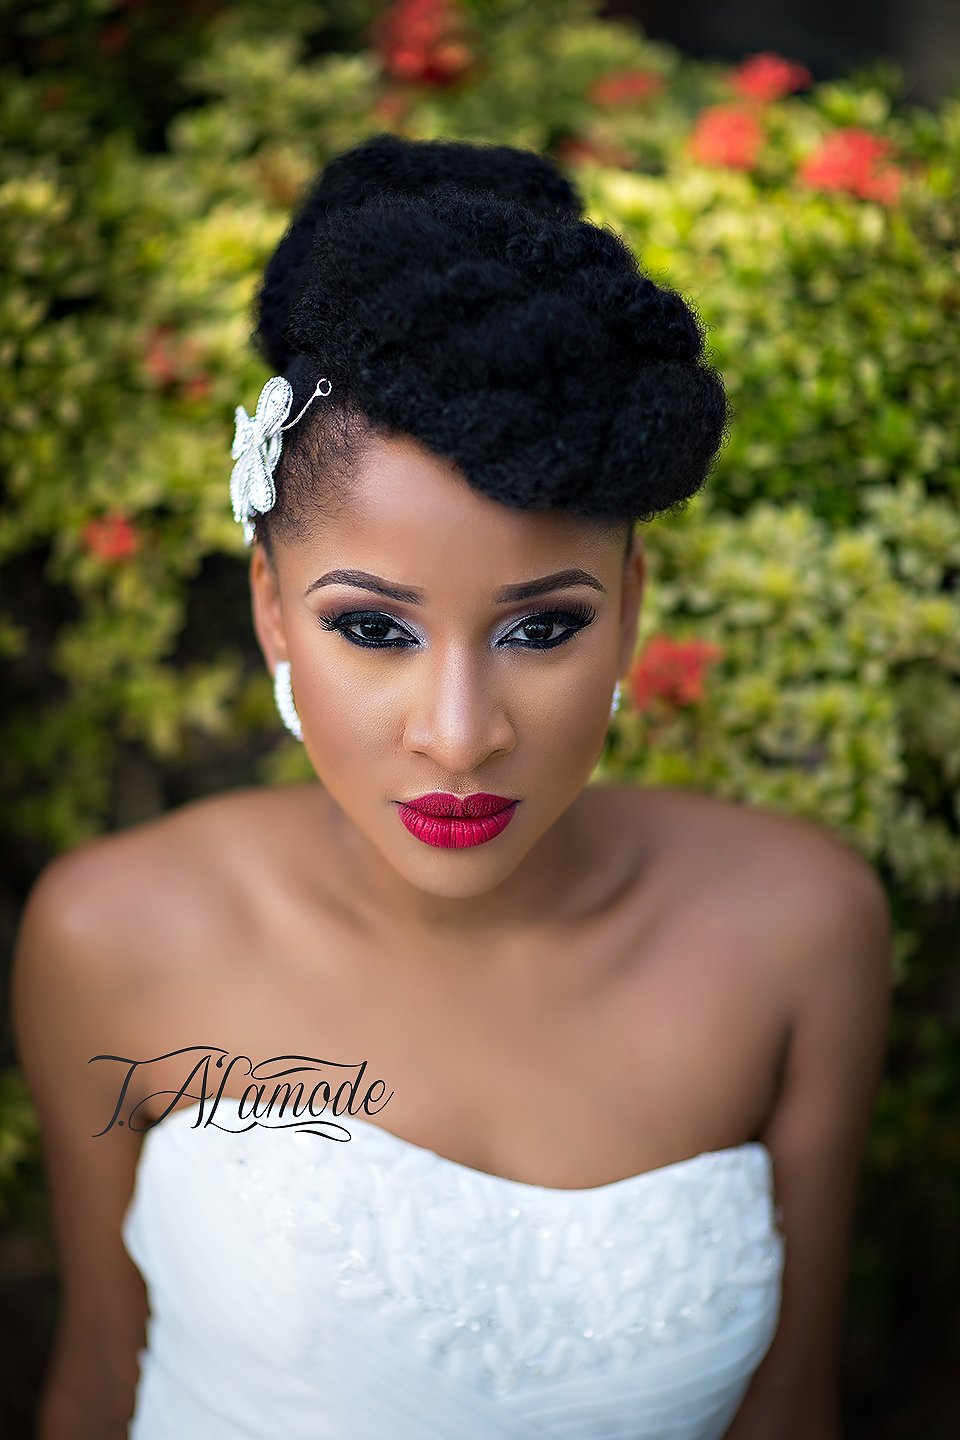 Free Striking Natural Hair Looks For The 2015 Bride T Alamode Wallpaper